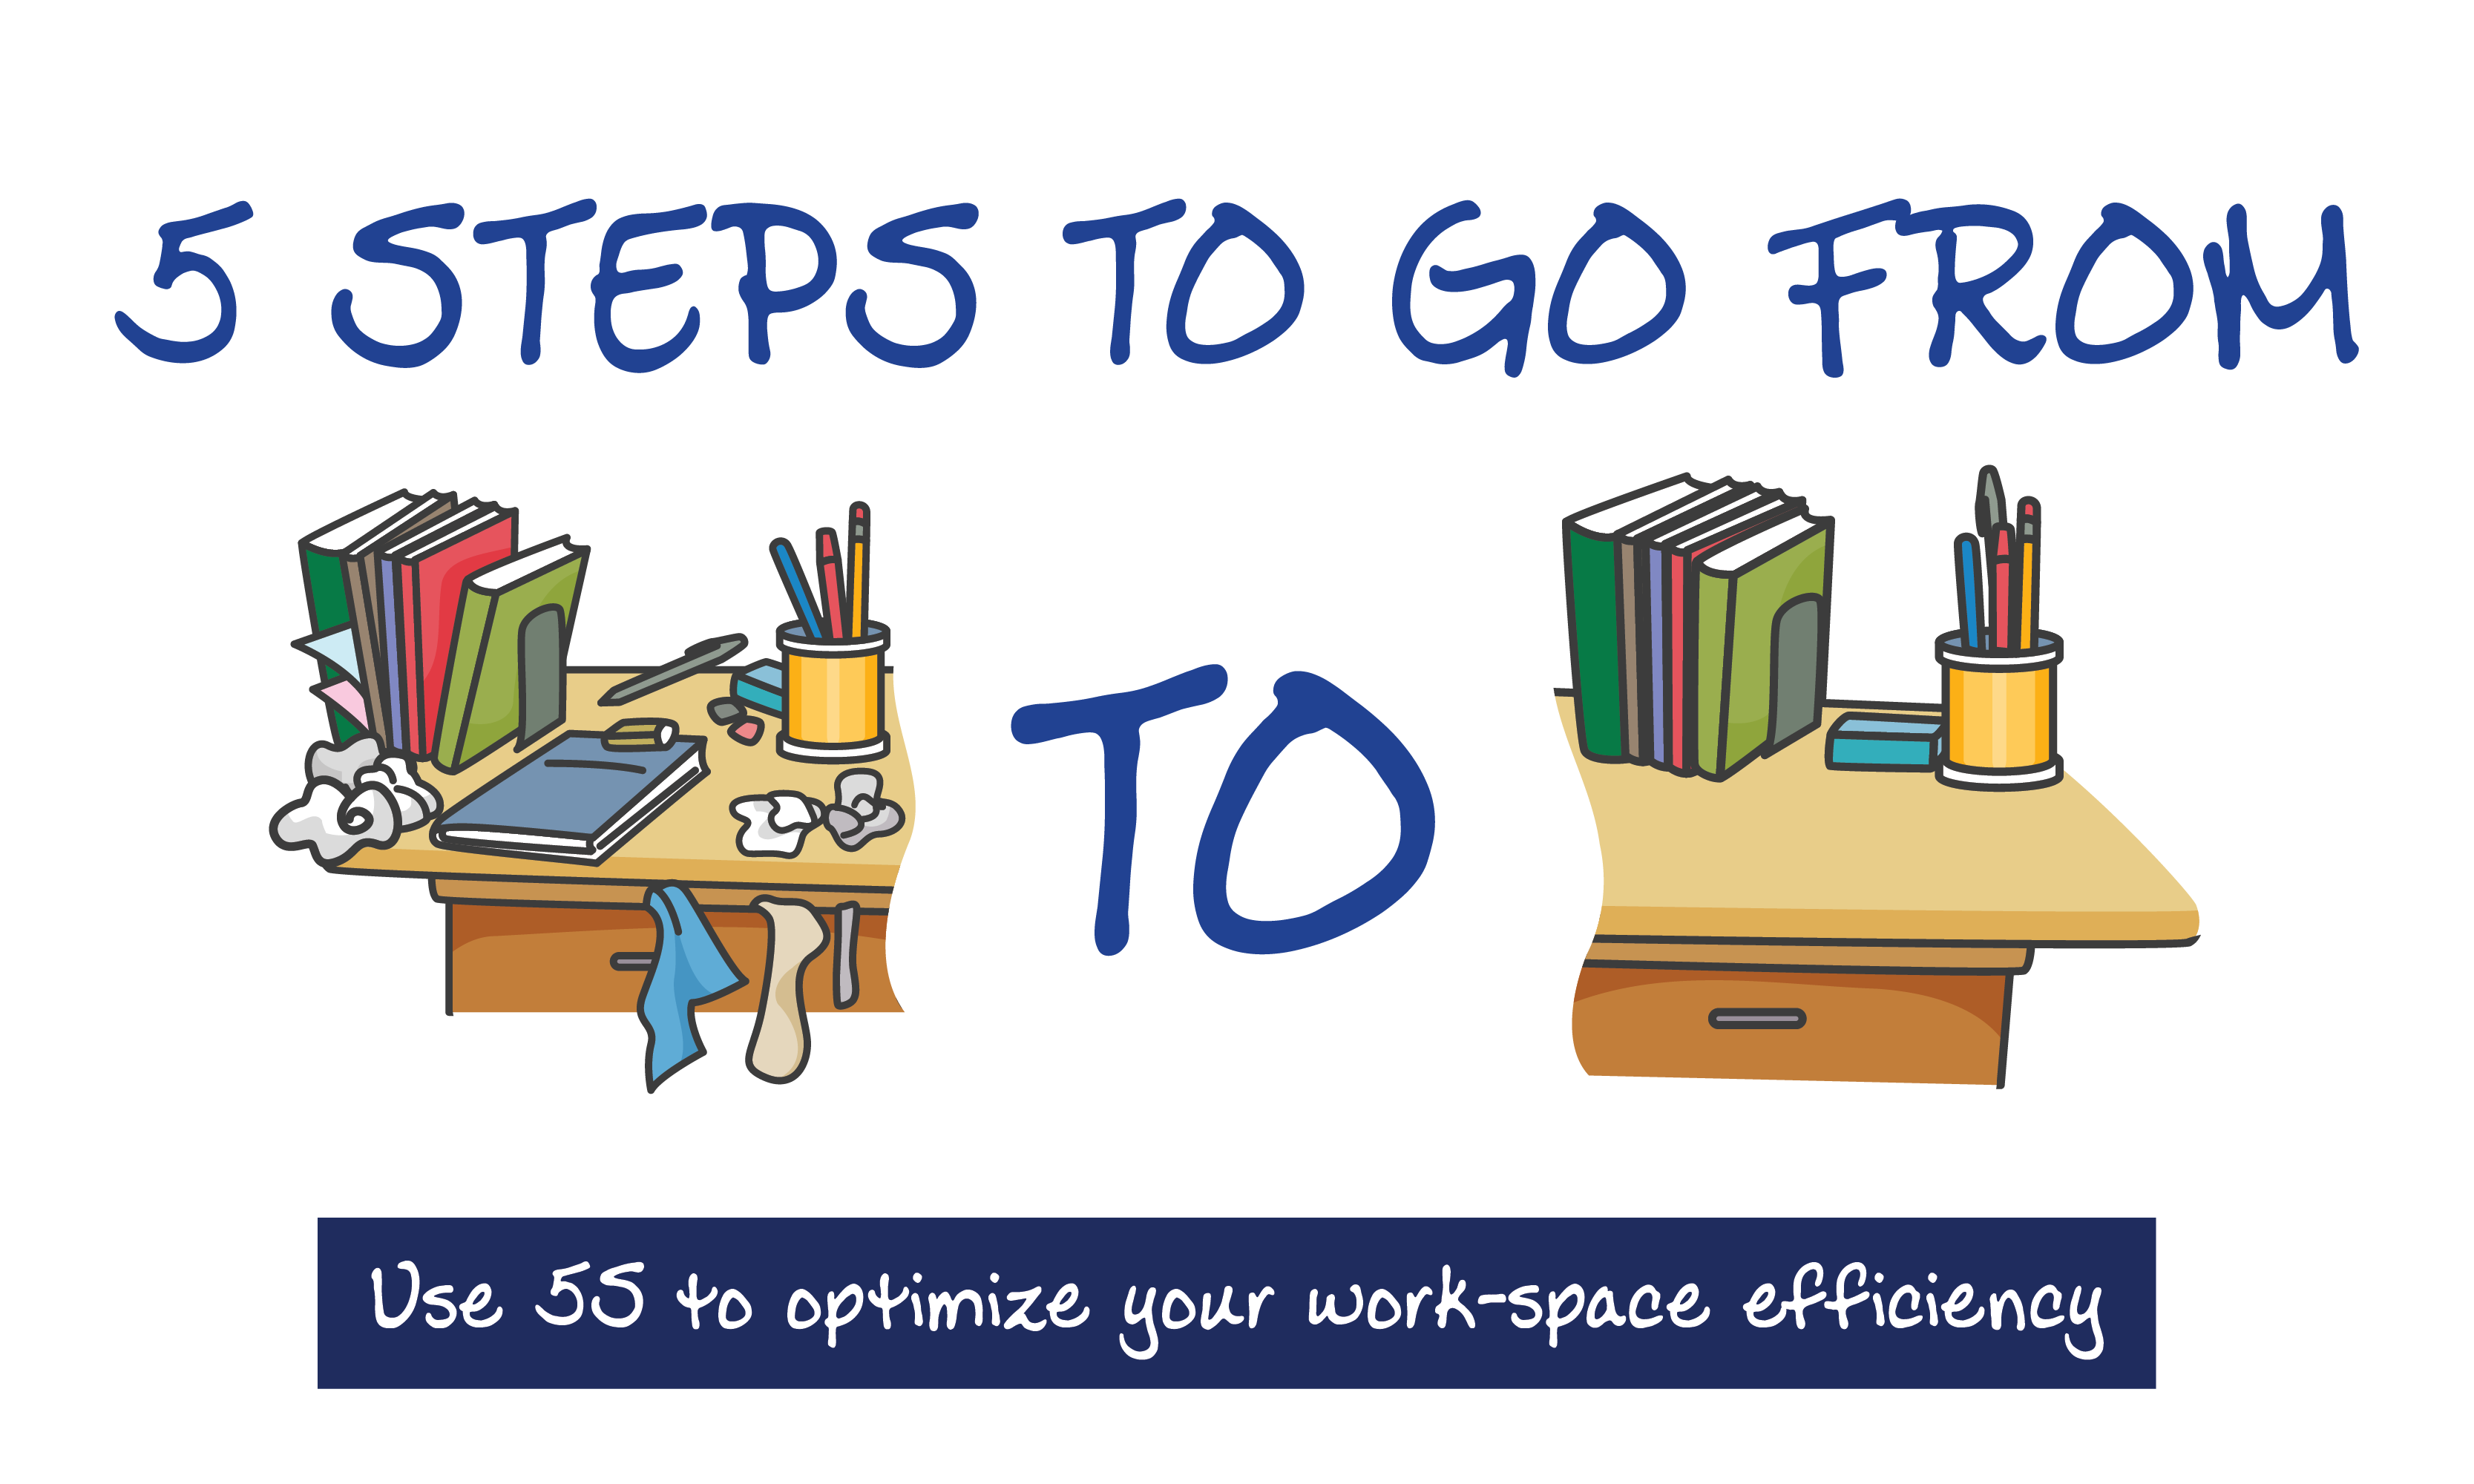 Spring Cleaning: How to Organize Your Work-Space Using 5S